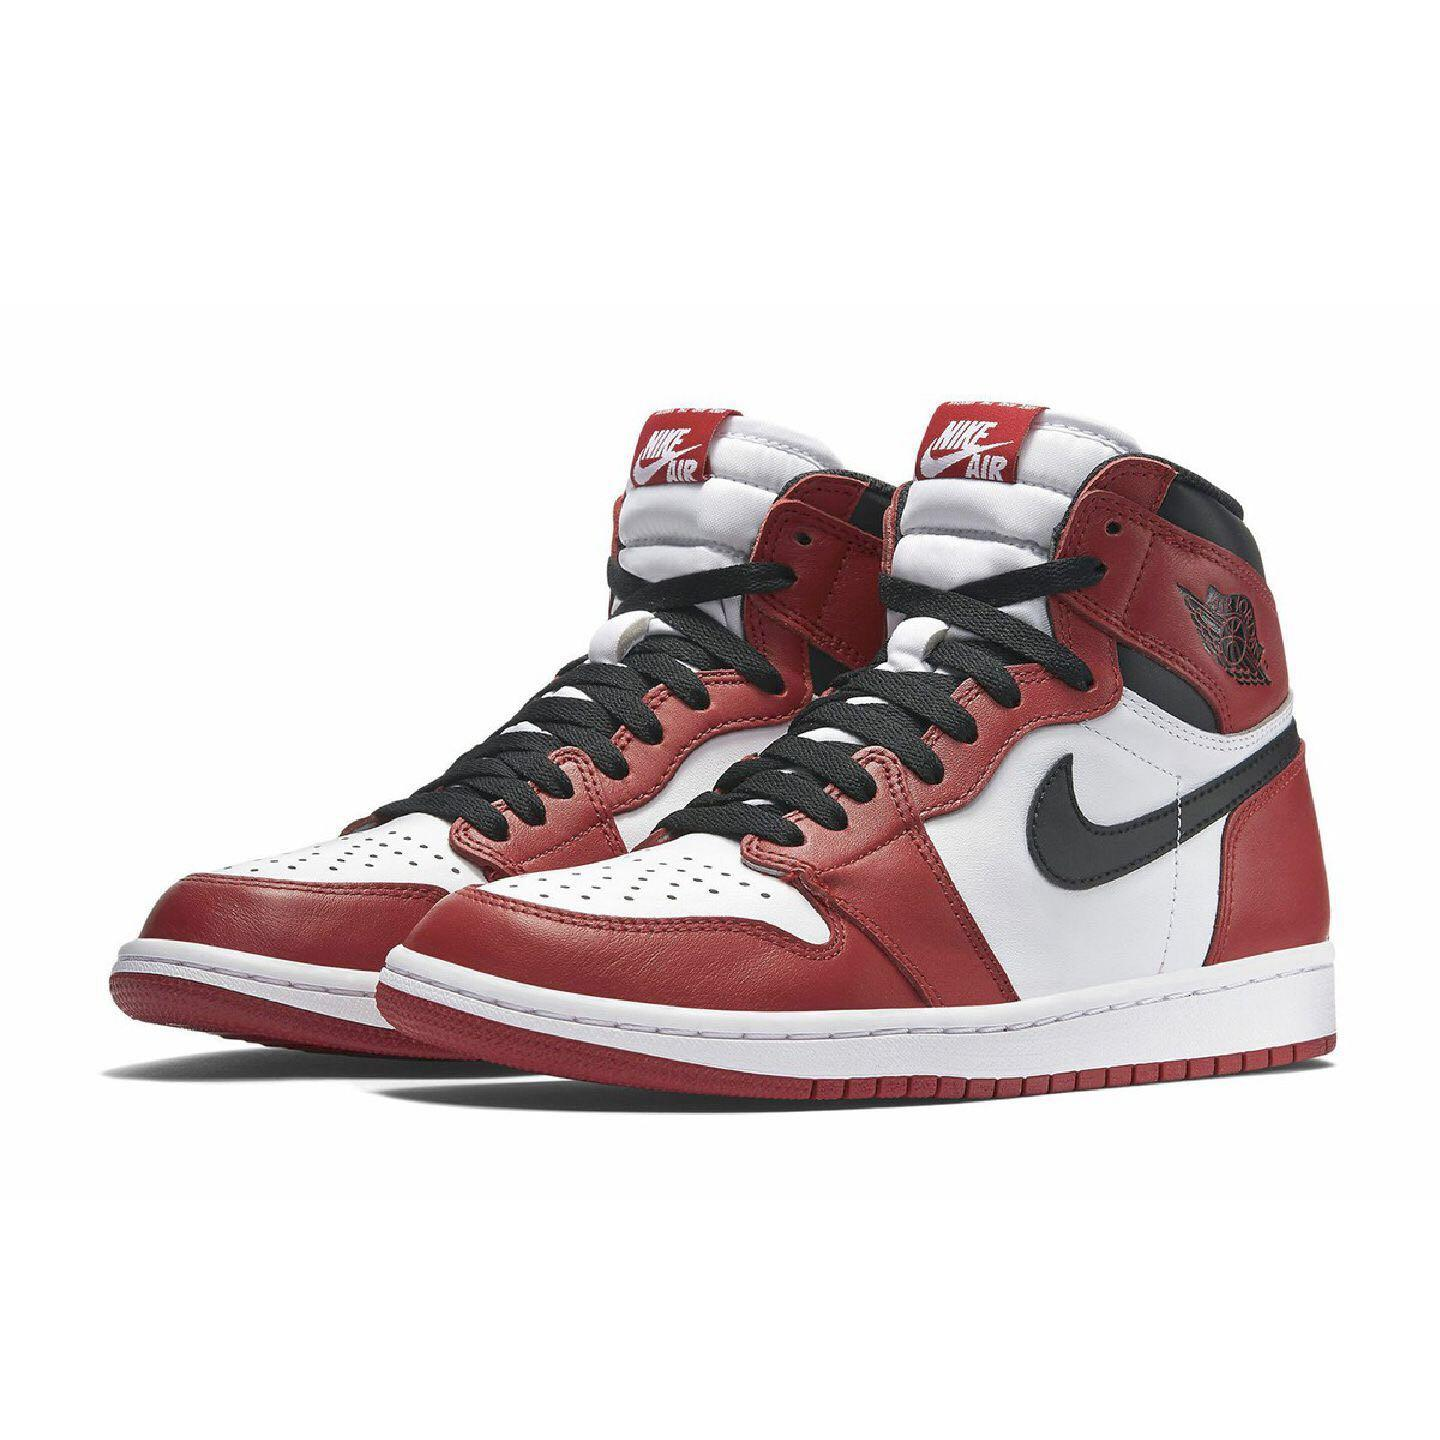 [PO CLOSED] Confirmed Pairs Air Jordan 1 Retro High OG Chicago Pre-Order